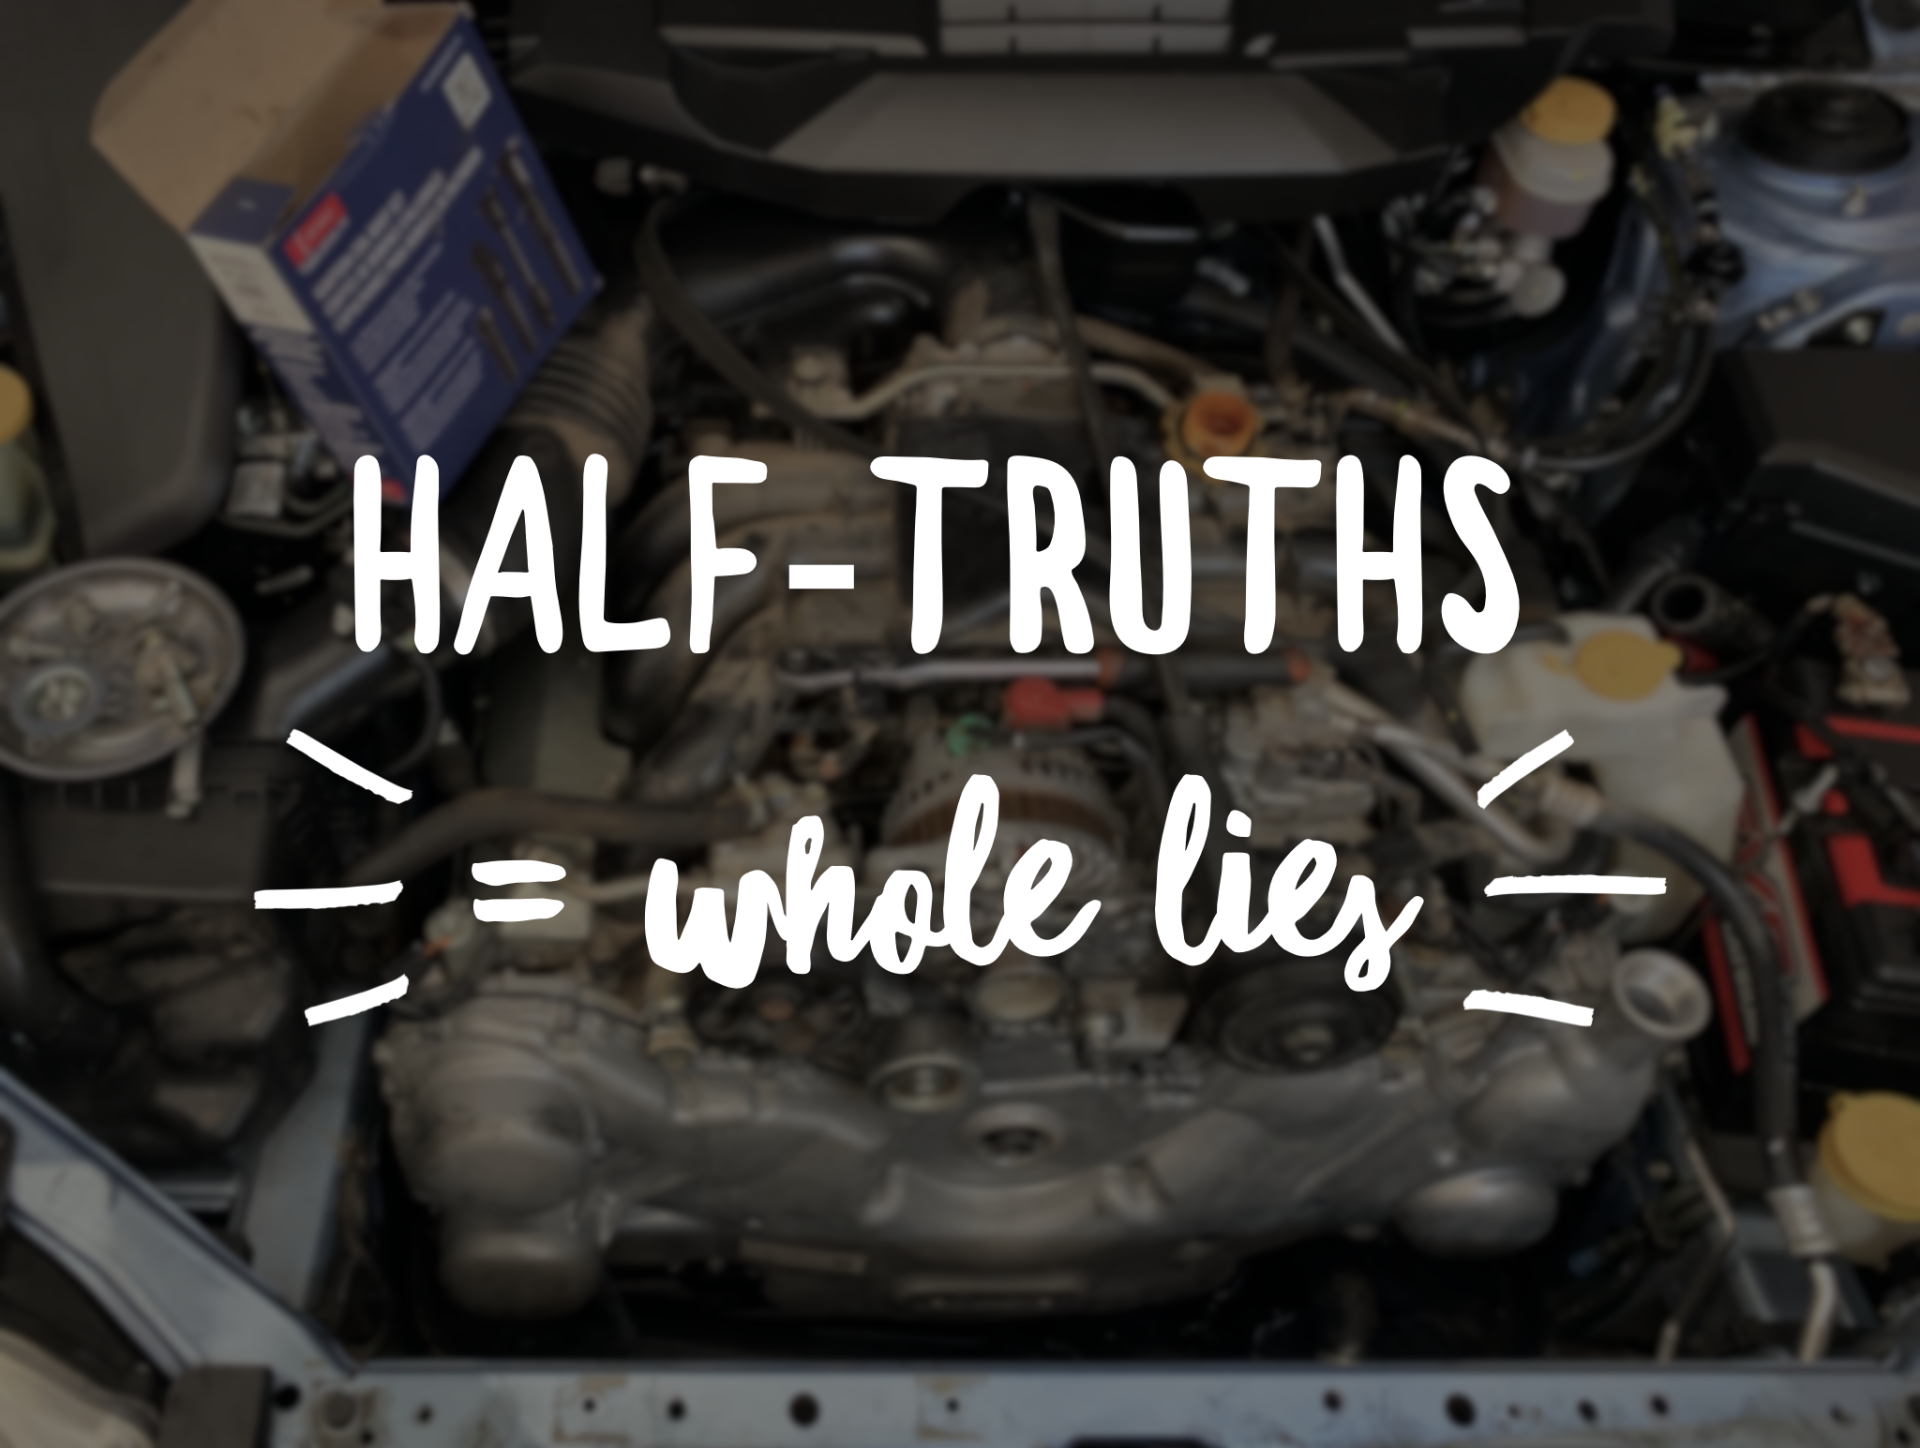 Half-truths equals whole lies.